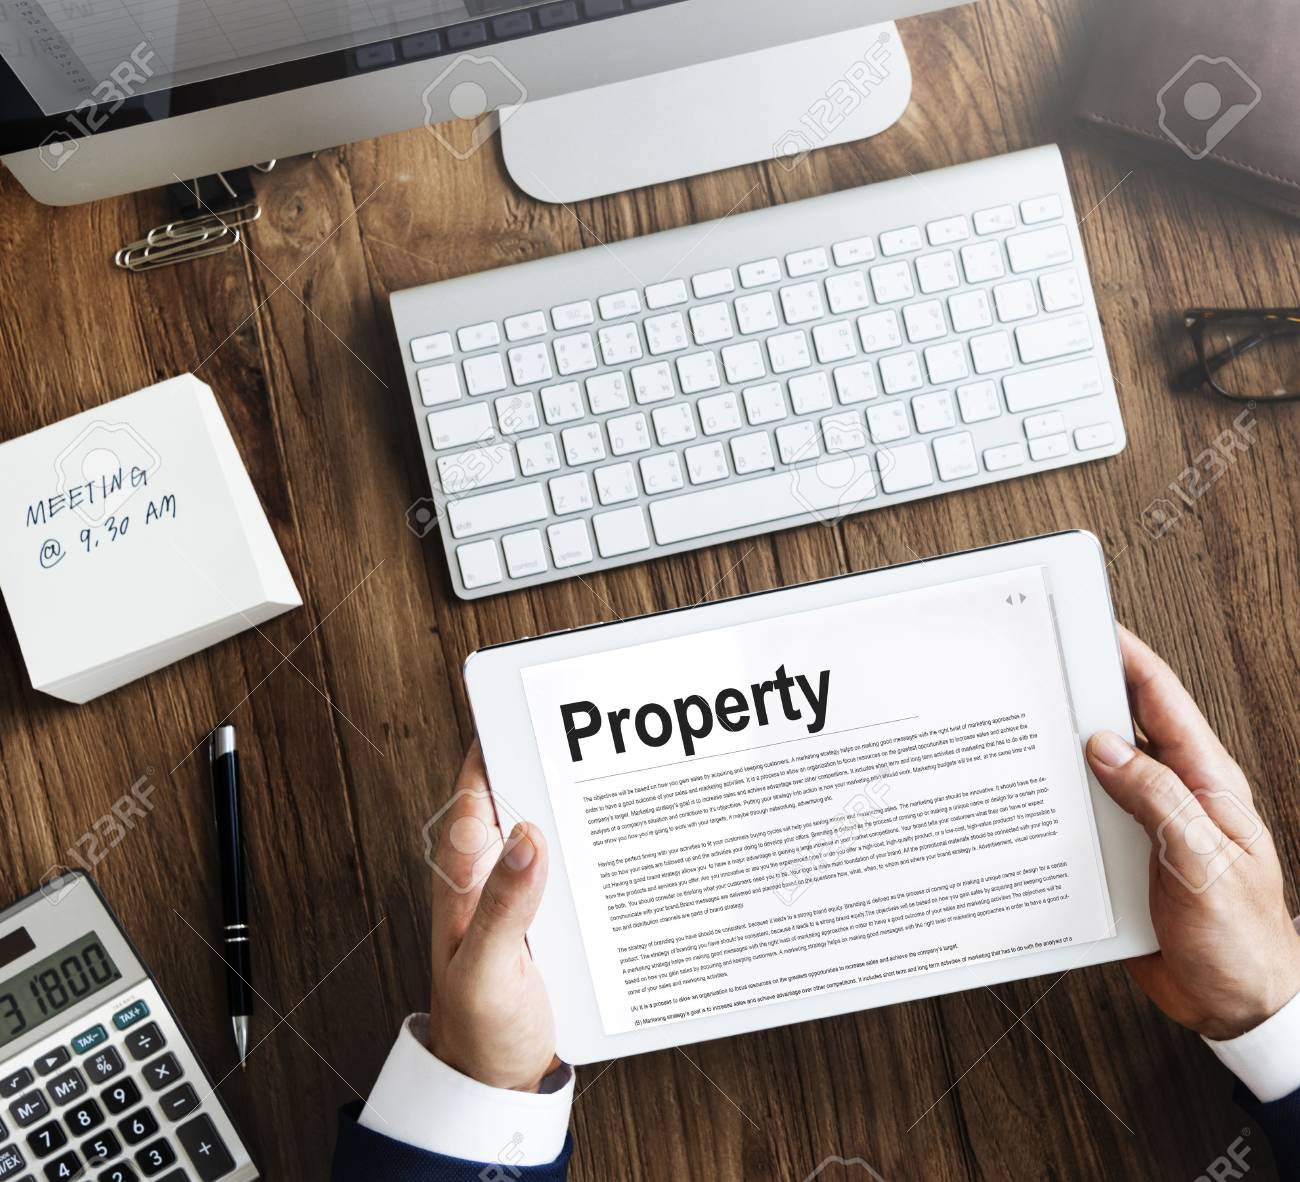 Property Release Form Assets Concept Stock Photo, Picture And ...